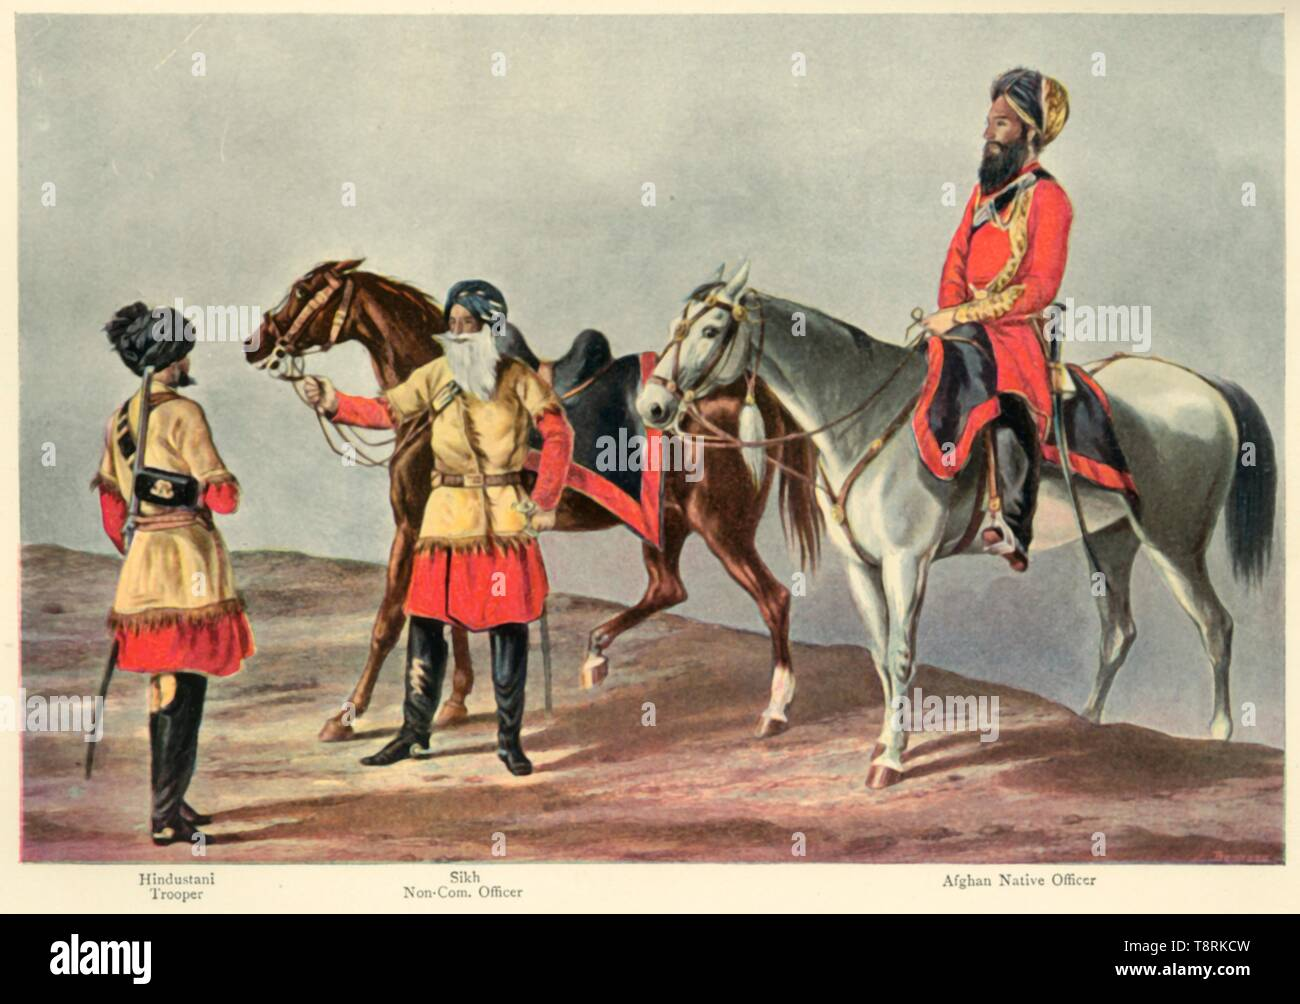 """'The Second Punjab Cavalry', 1901. Indian and Afghan soldiers during the period of the British Raj: 'Hindustani Trooper; Sikh Non-Commissioned Officer; Afghan Native Officer'. From """"The Life and Deeds of Earl Roberts, Vol. III. - To The End of Lord Roberts's Indian Career"""", by J. Maclaren Cobban. [T. C. & E. C. Jack, Edinburgh, 1901] - Stock Image"""